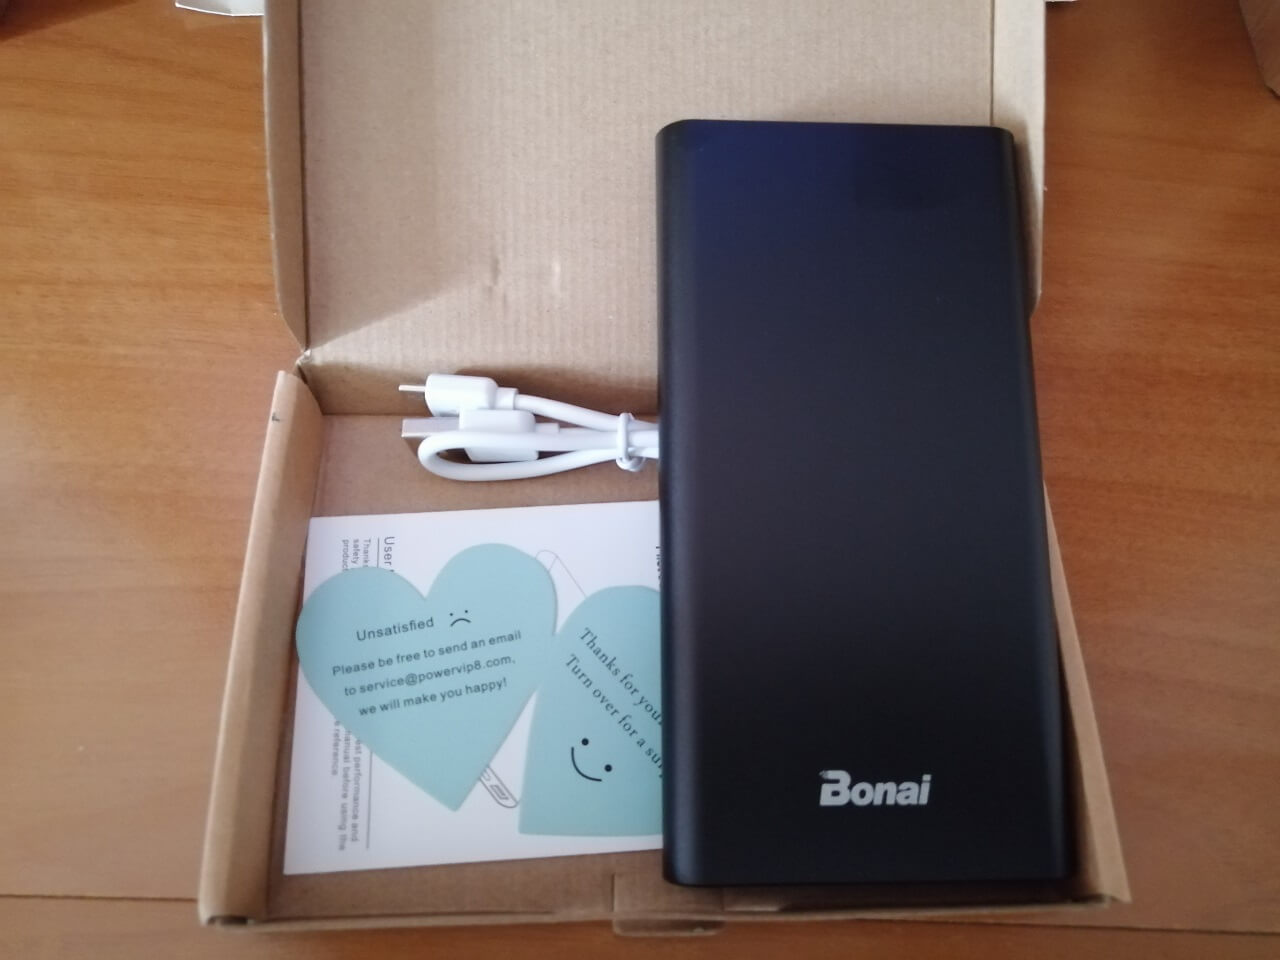 Power bank portatile Bonai da 13.800 Mah